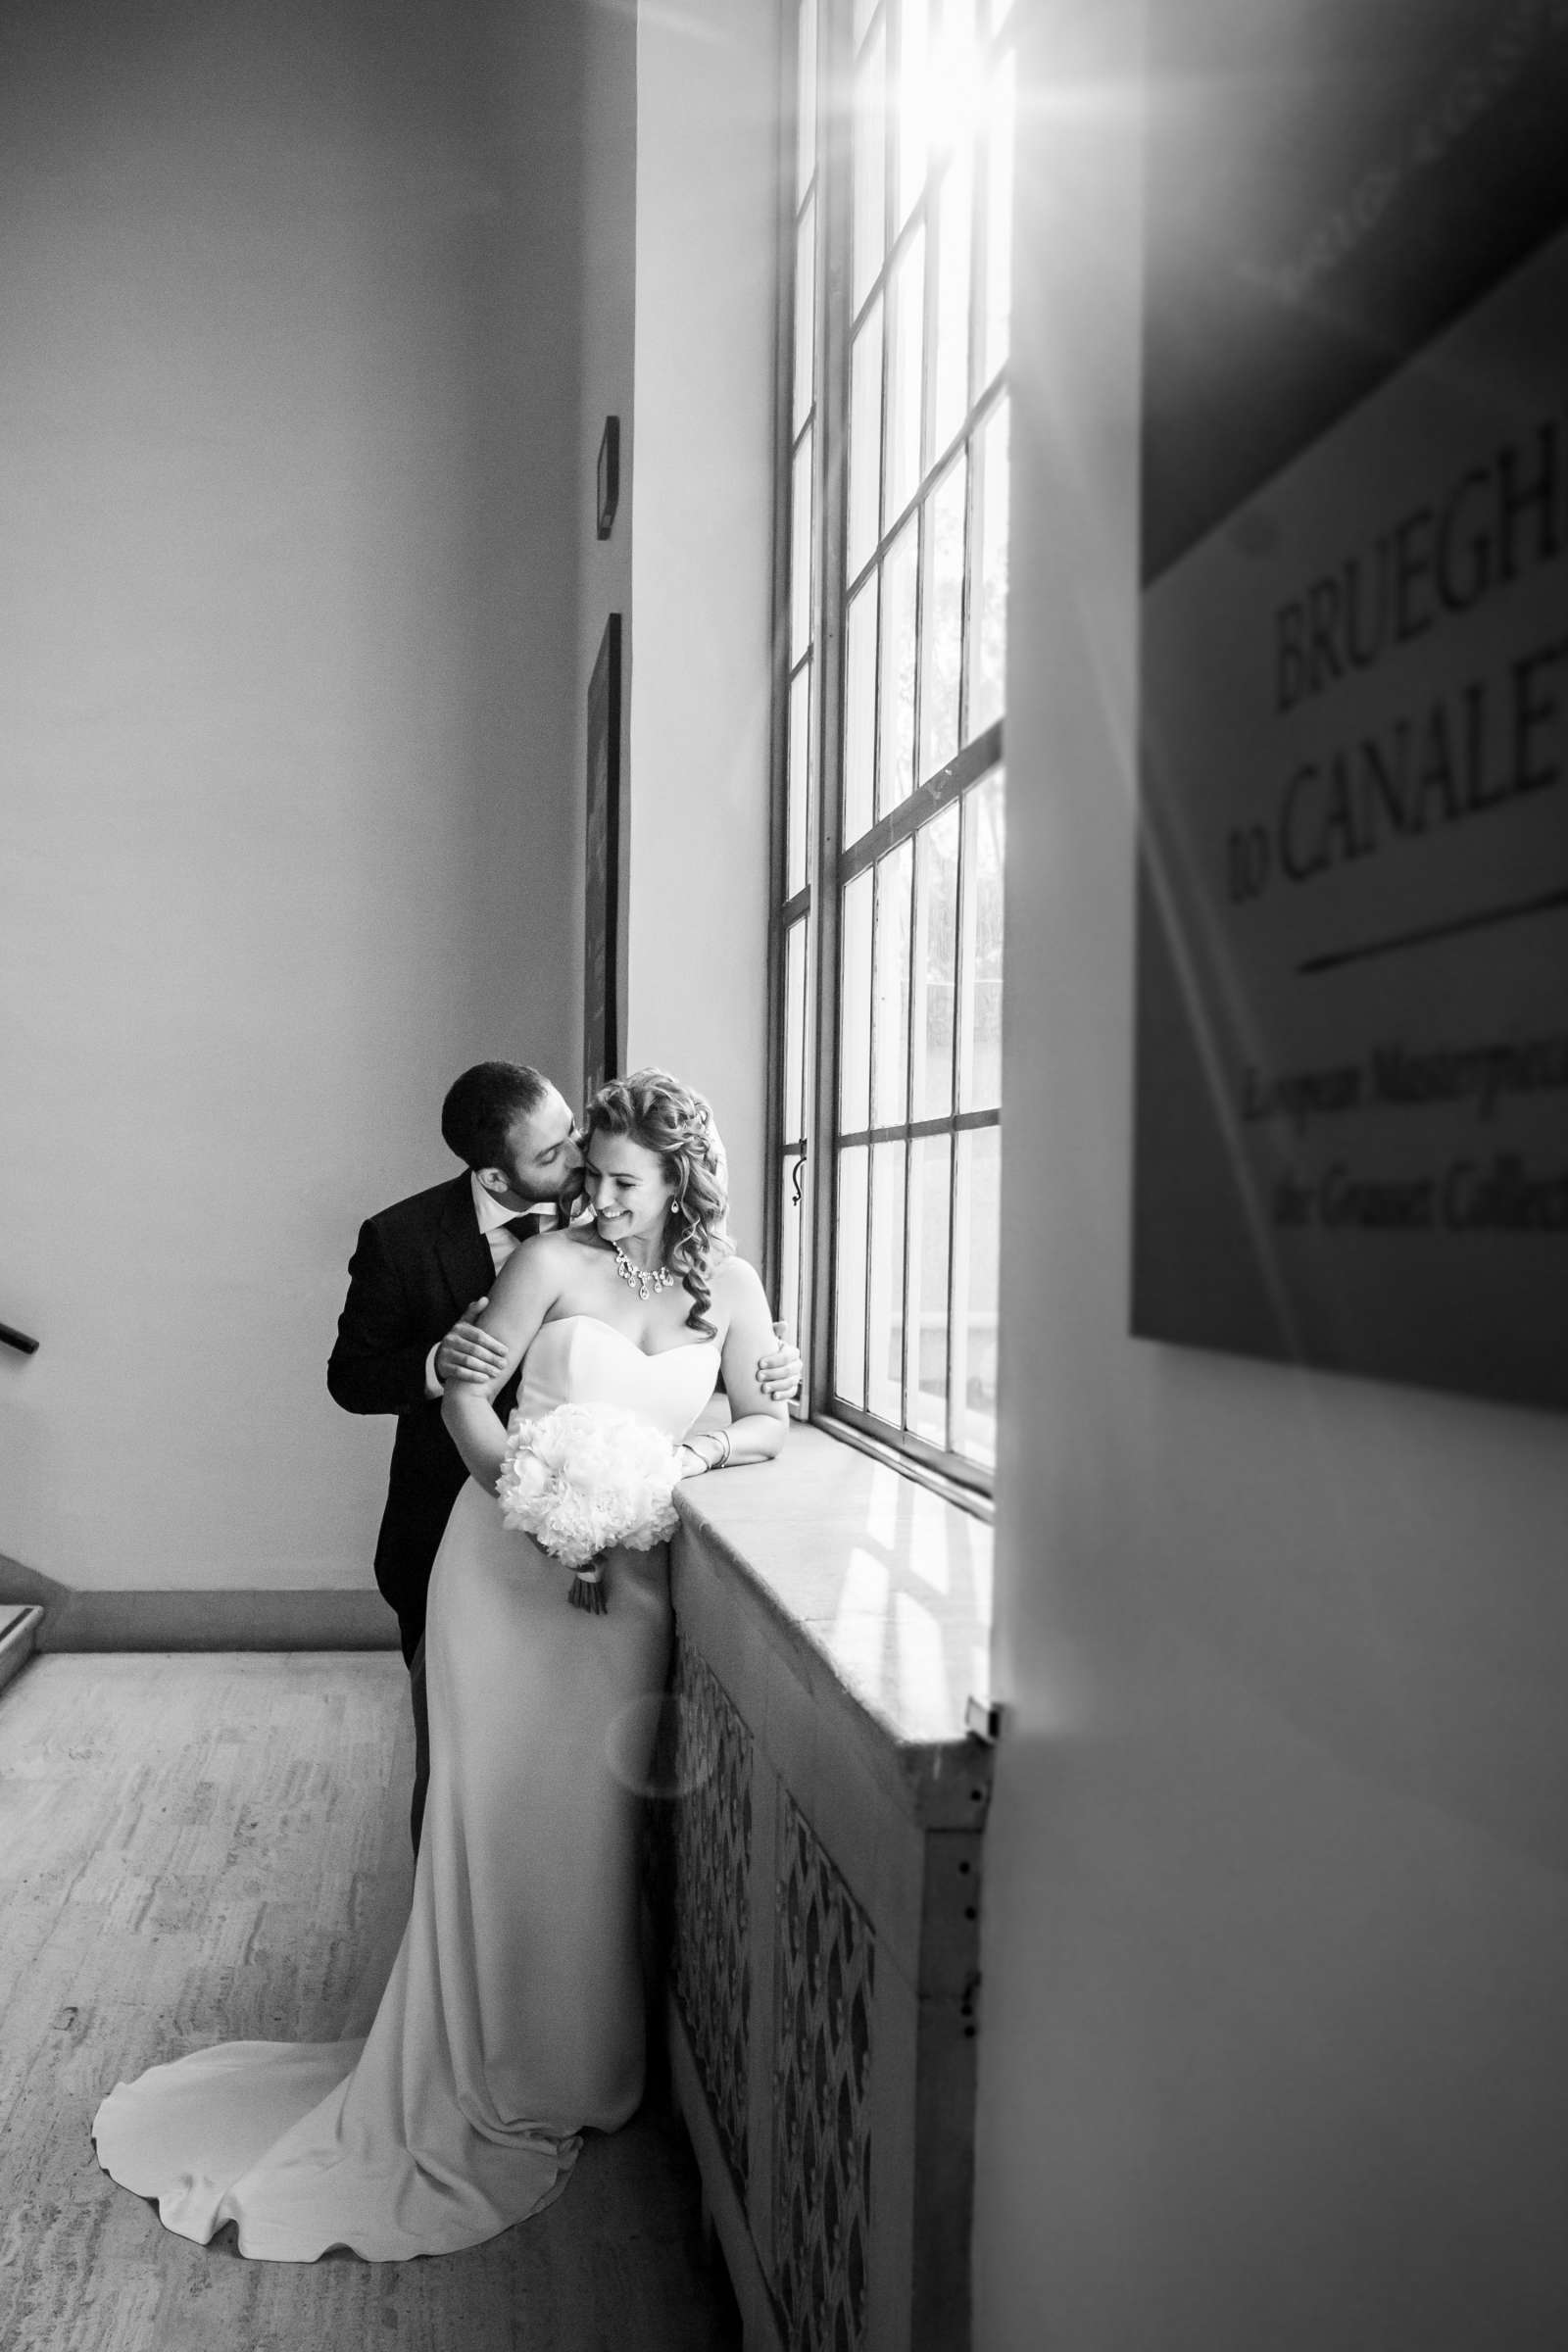 San Diego Museum of Art Wedding coordinated by First Comes Love Weddings & Events, Ruthie and Larry Wedding Photo #236741 by True Photography